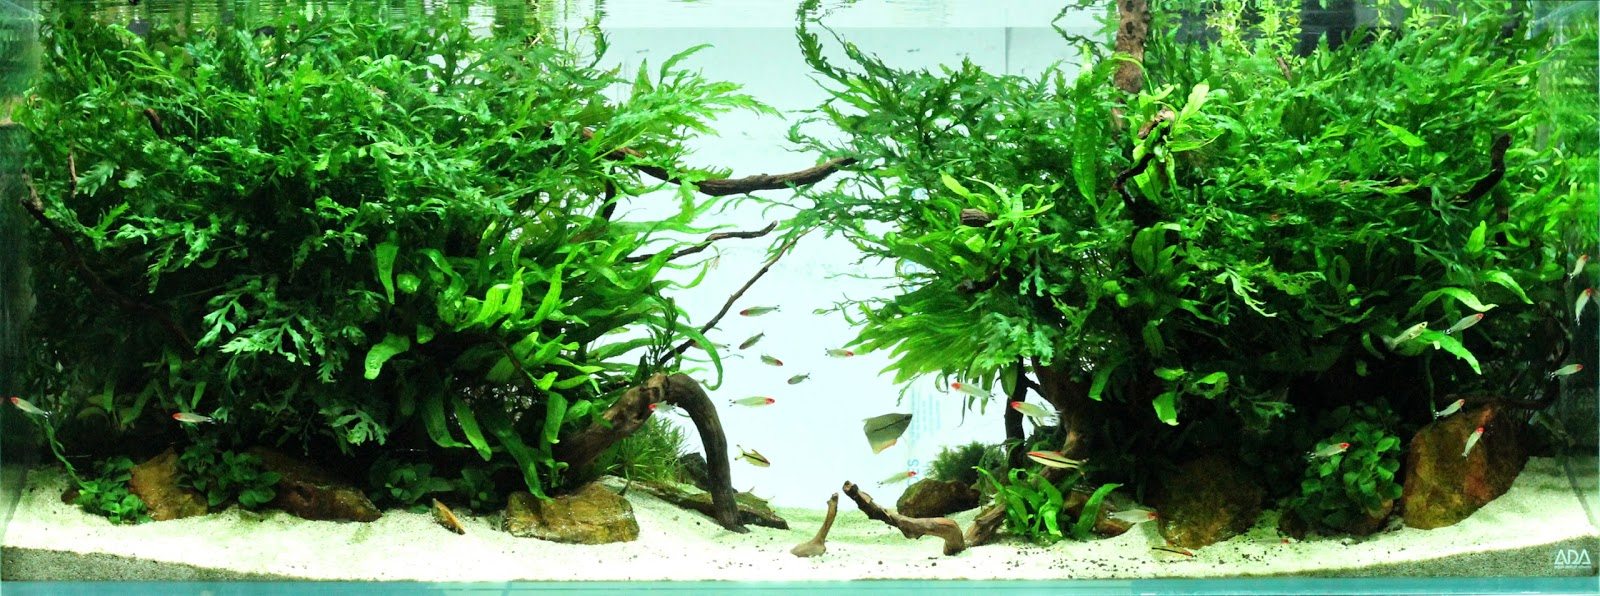 Aquascaping spain the jungle by balbi vaquero - Aquascape espana ...